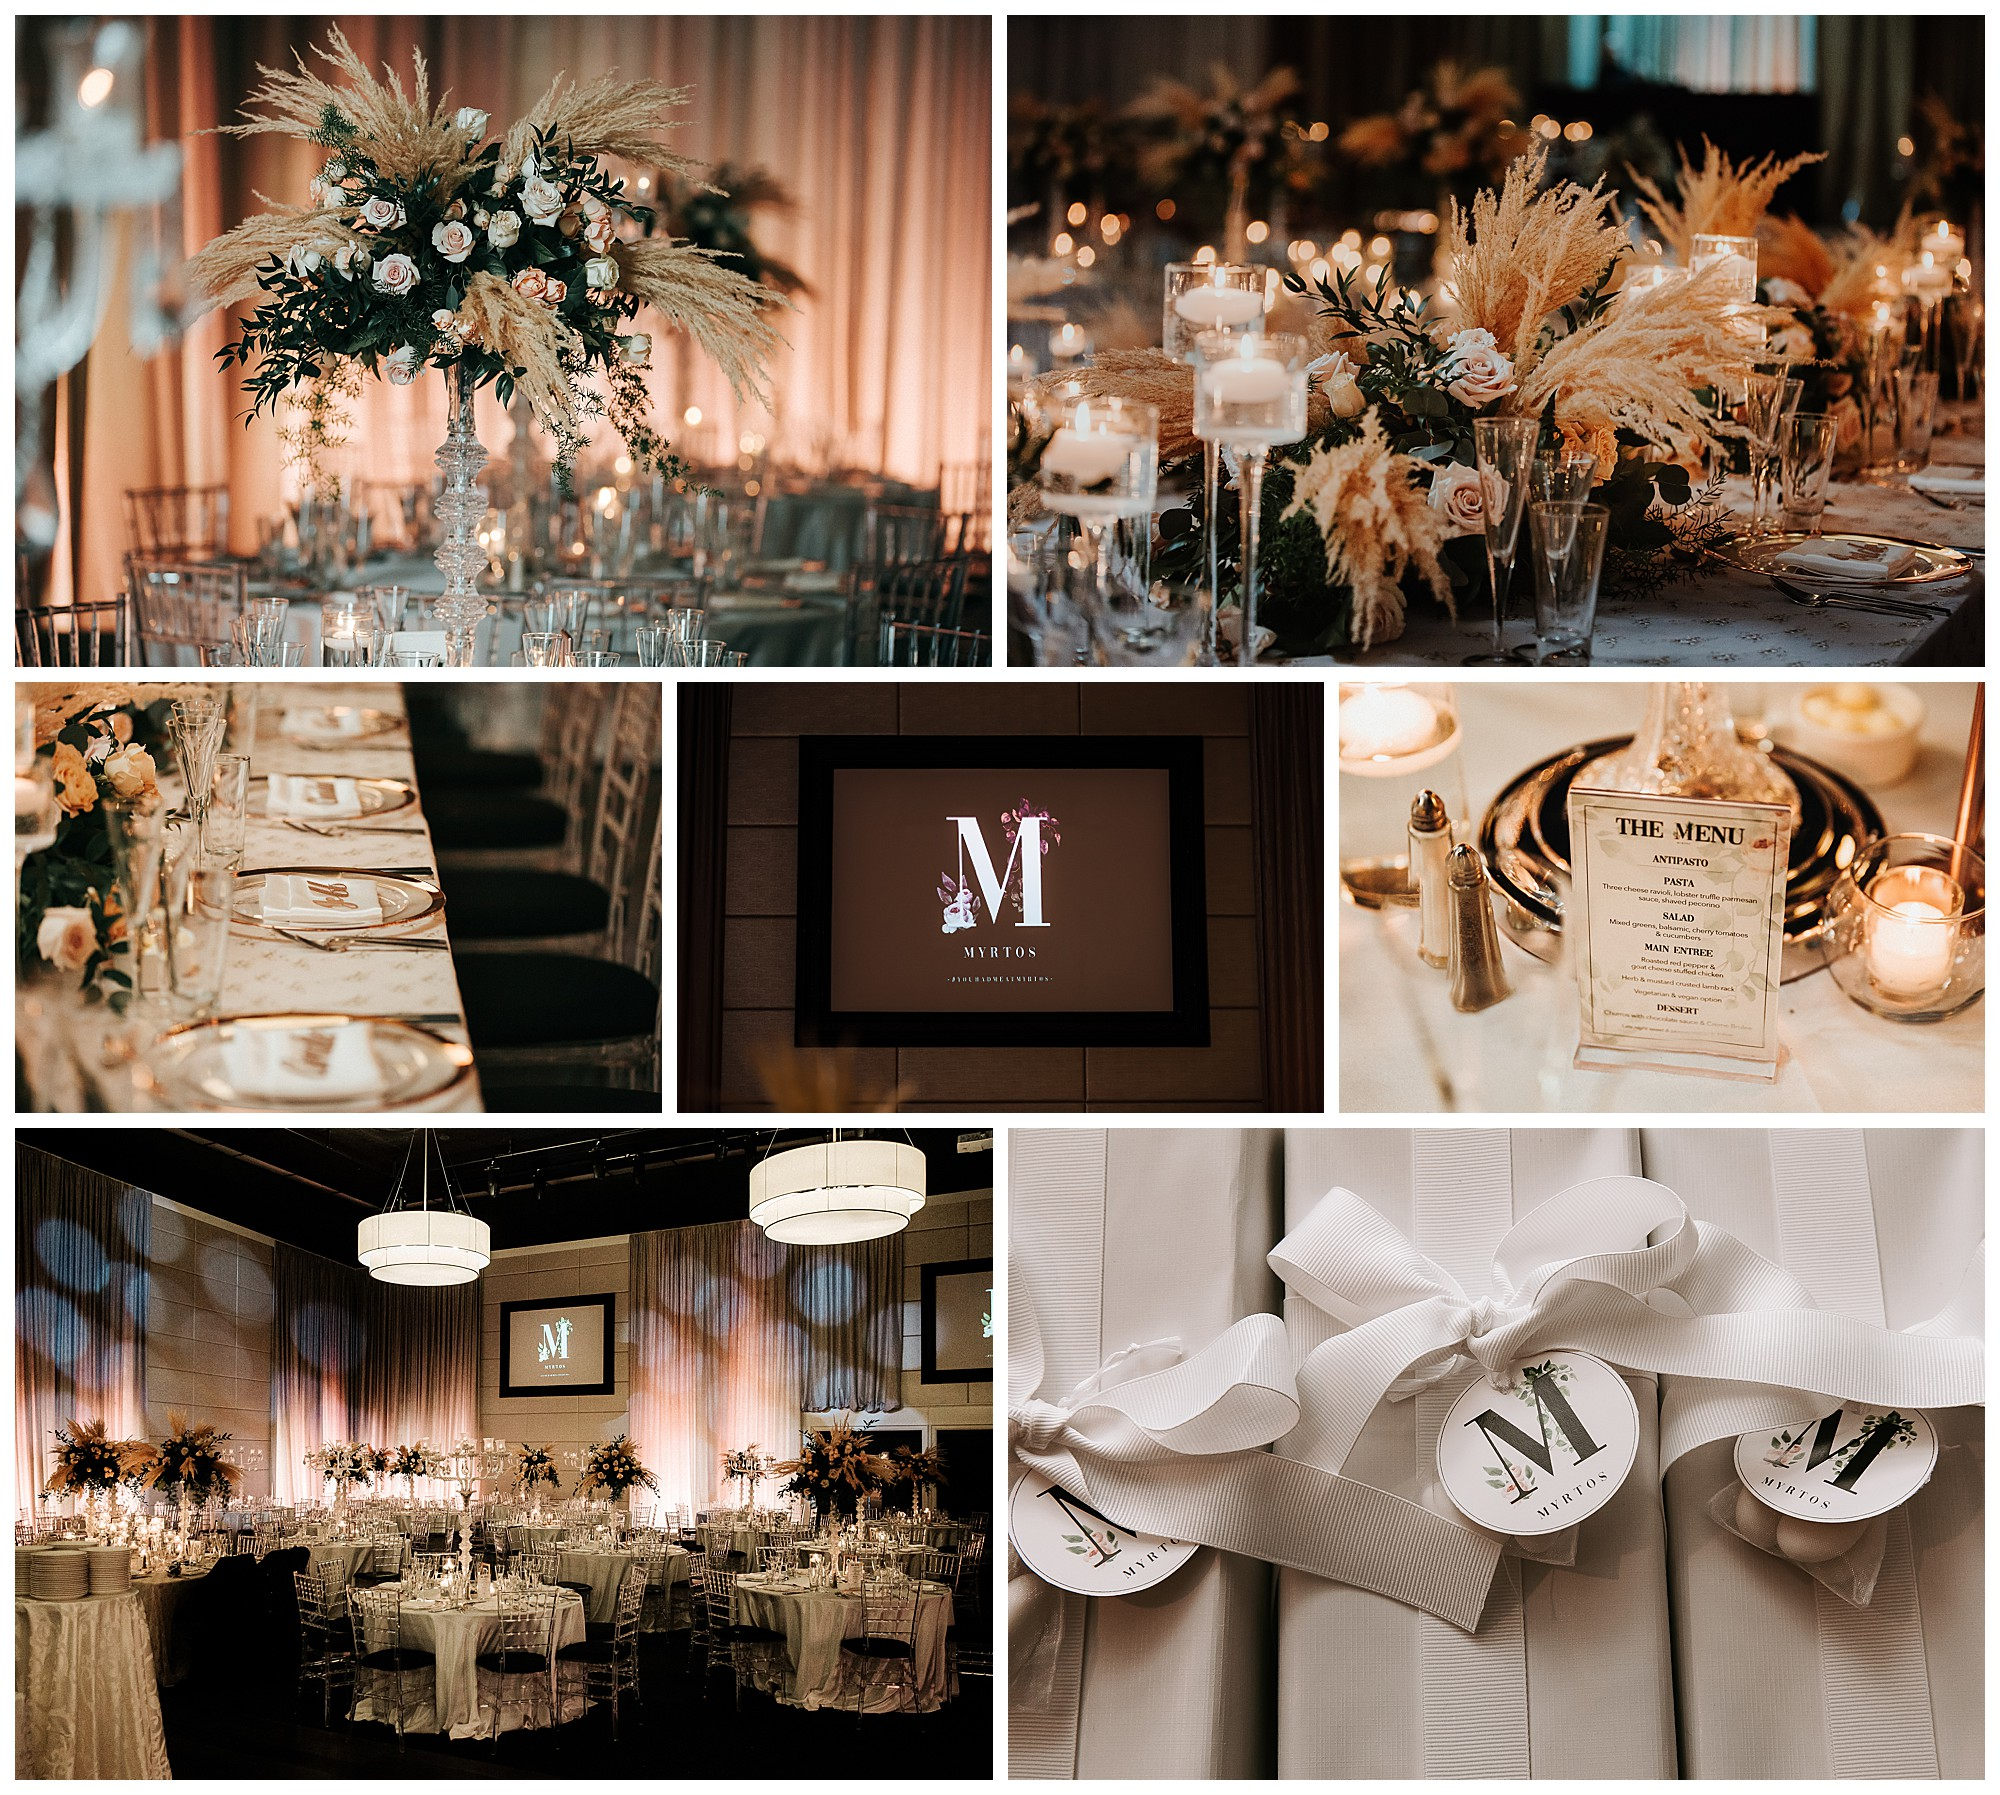 Joanna-Christos-Grand-Luxe-Wedding-Photos-Mint-Room-Toronto-VanDaele-Russell_0096.jpg